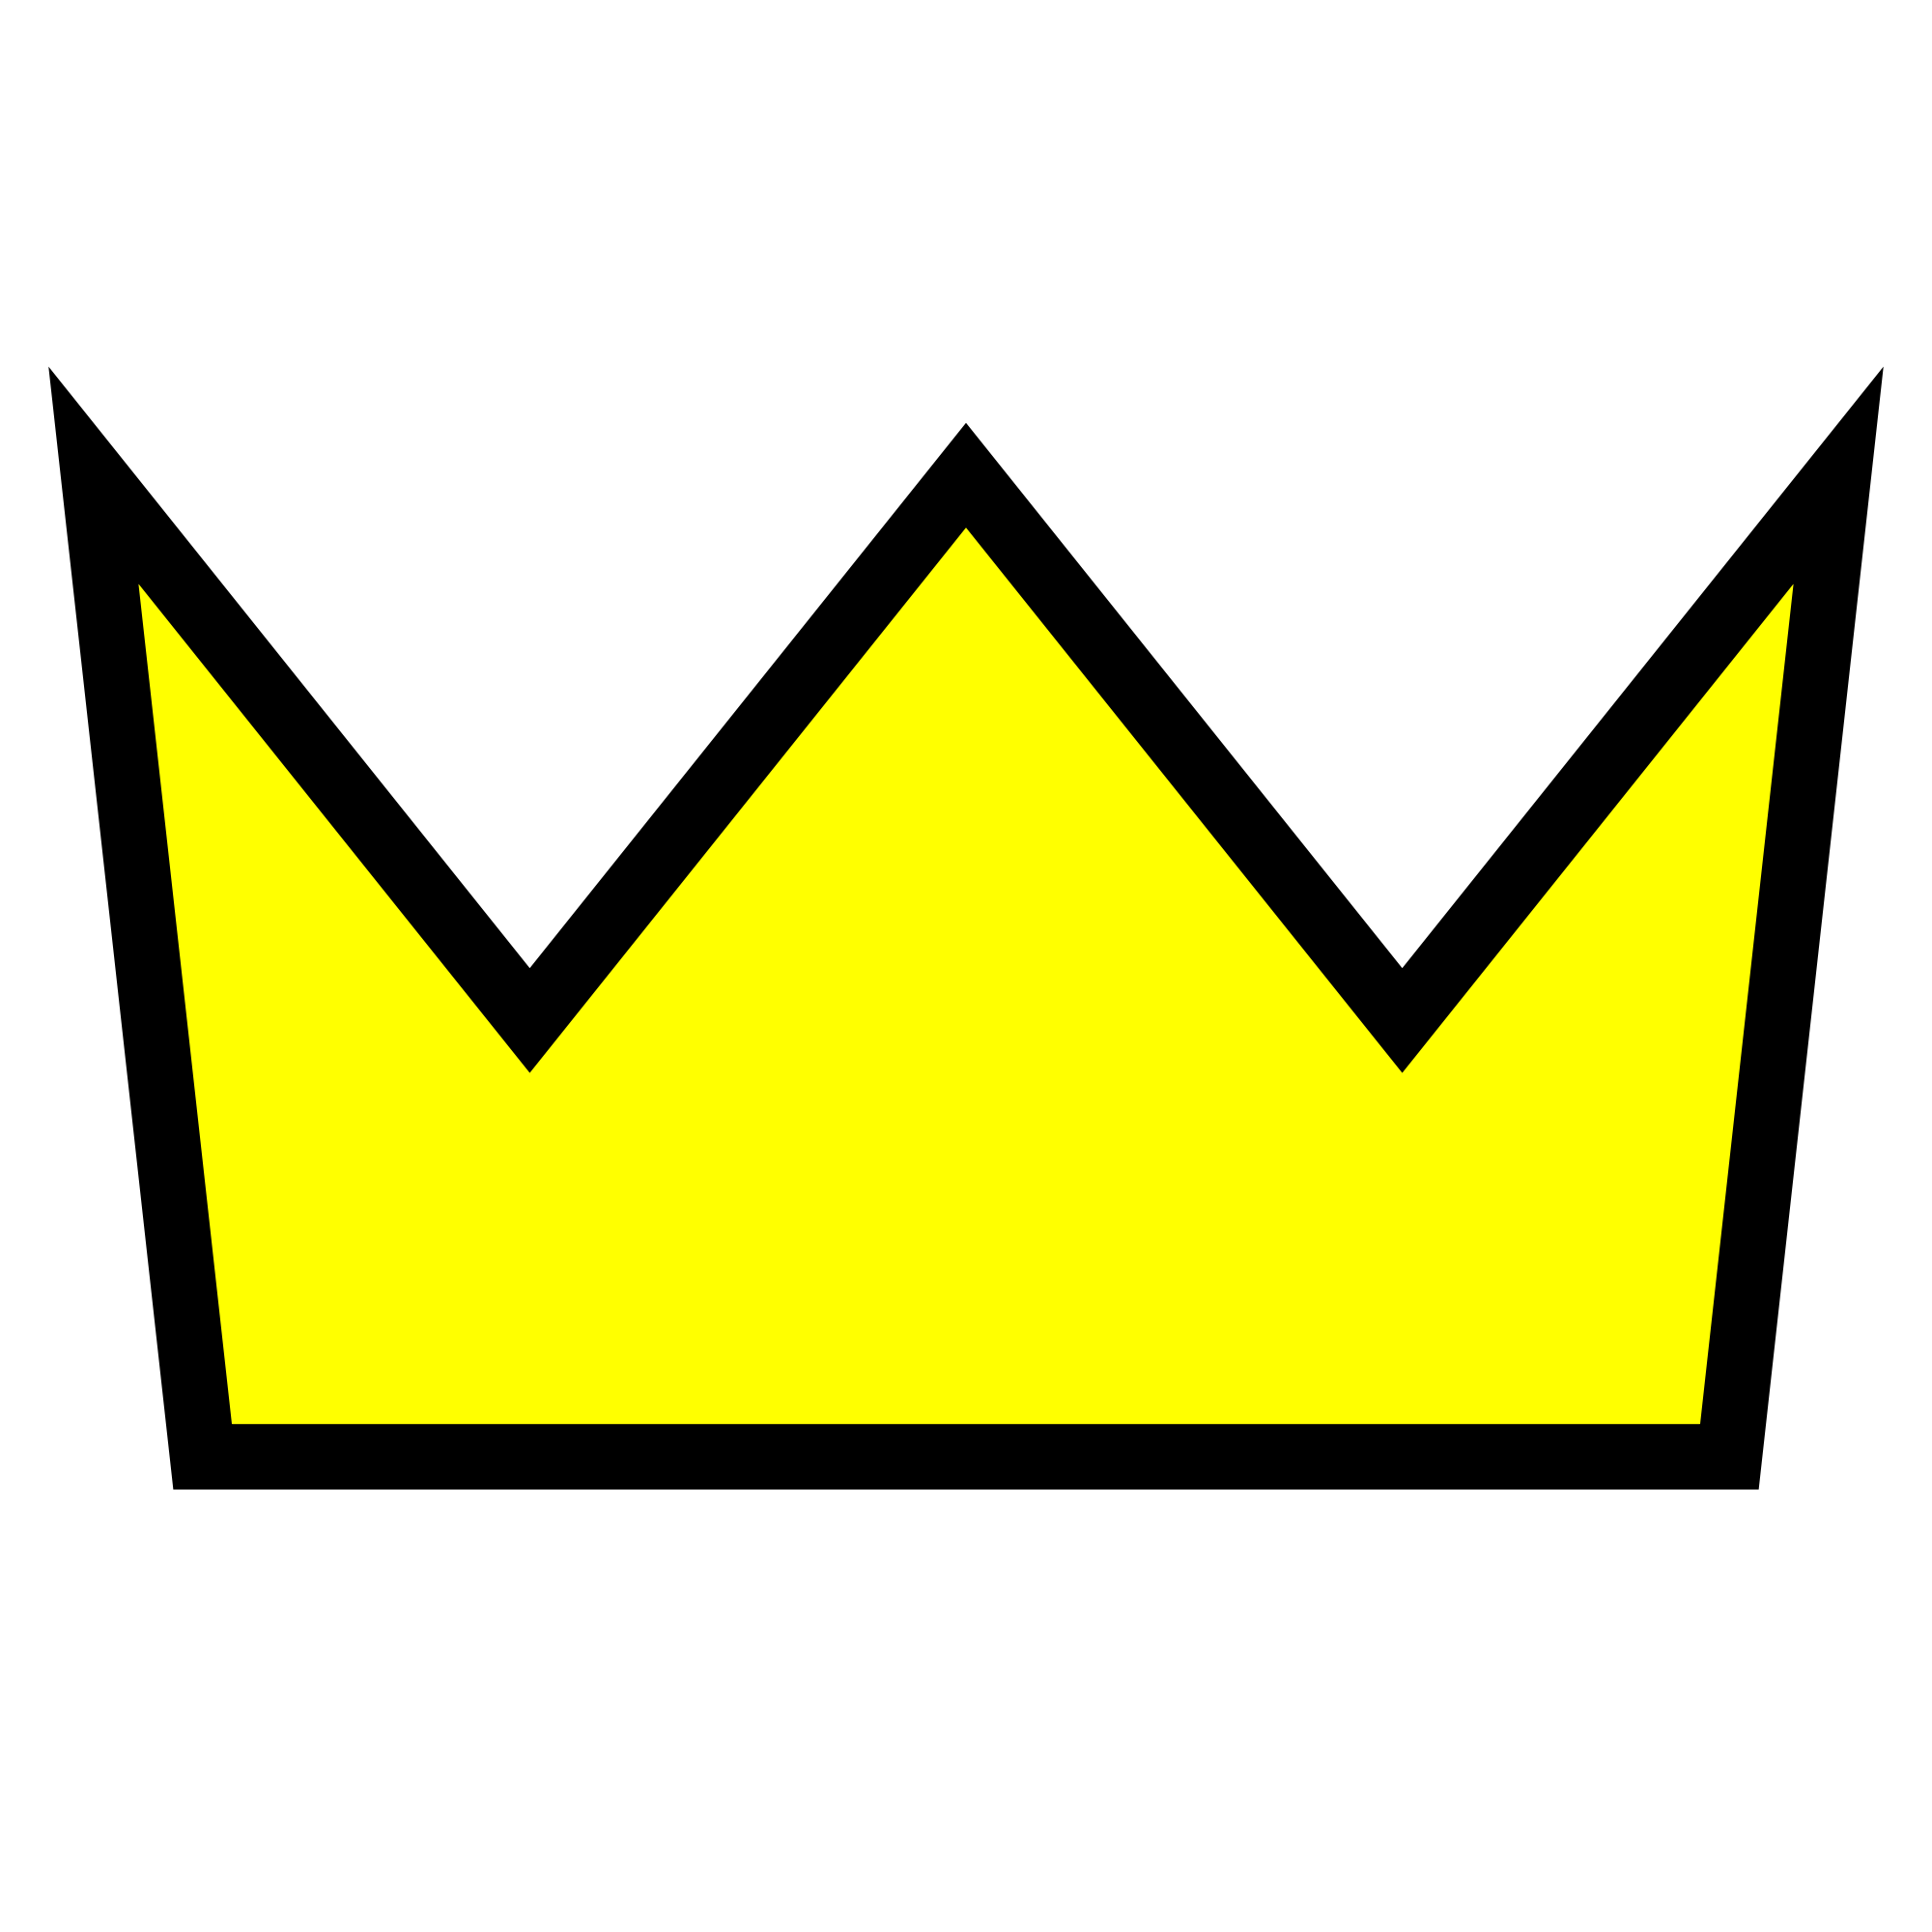 Crowns clipart big crown, Crowns big crown Transparent FREE.